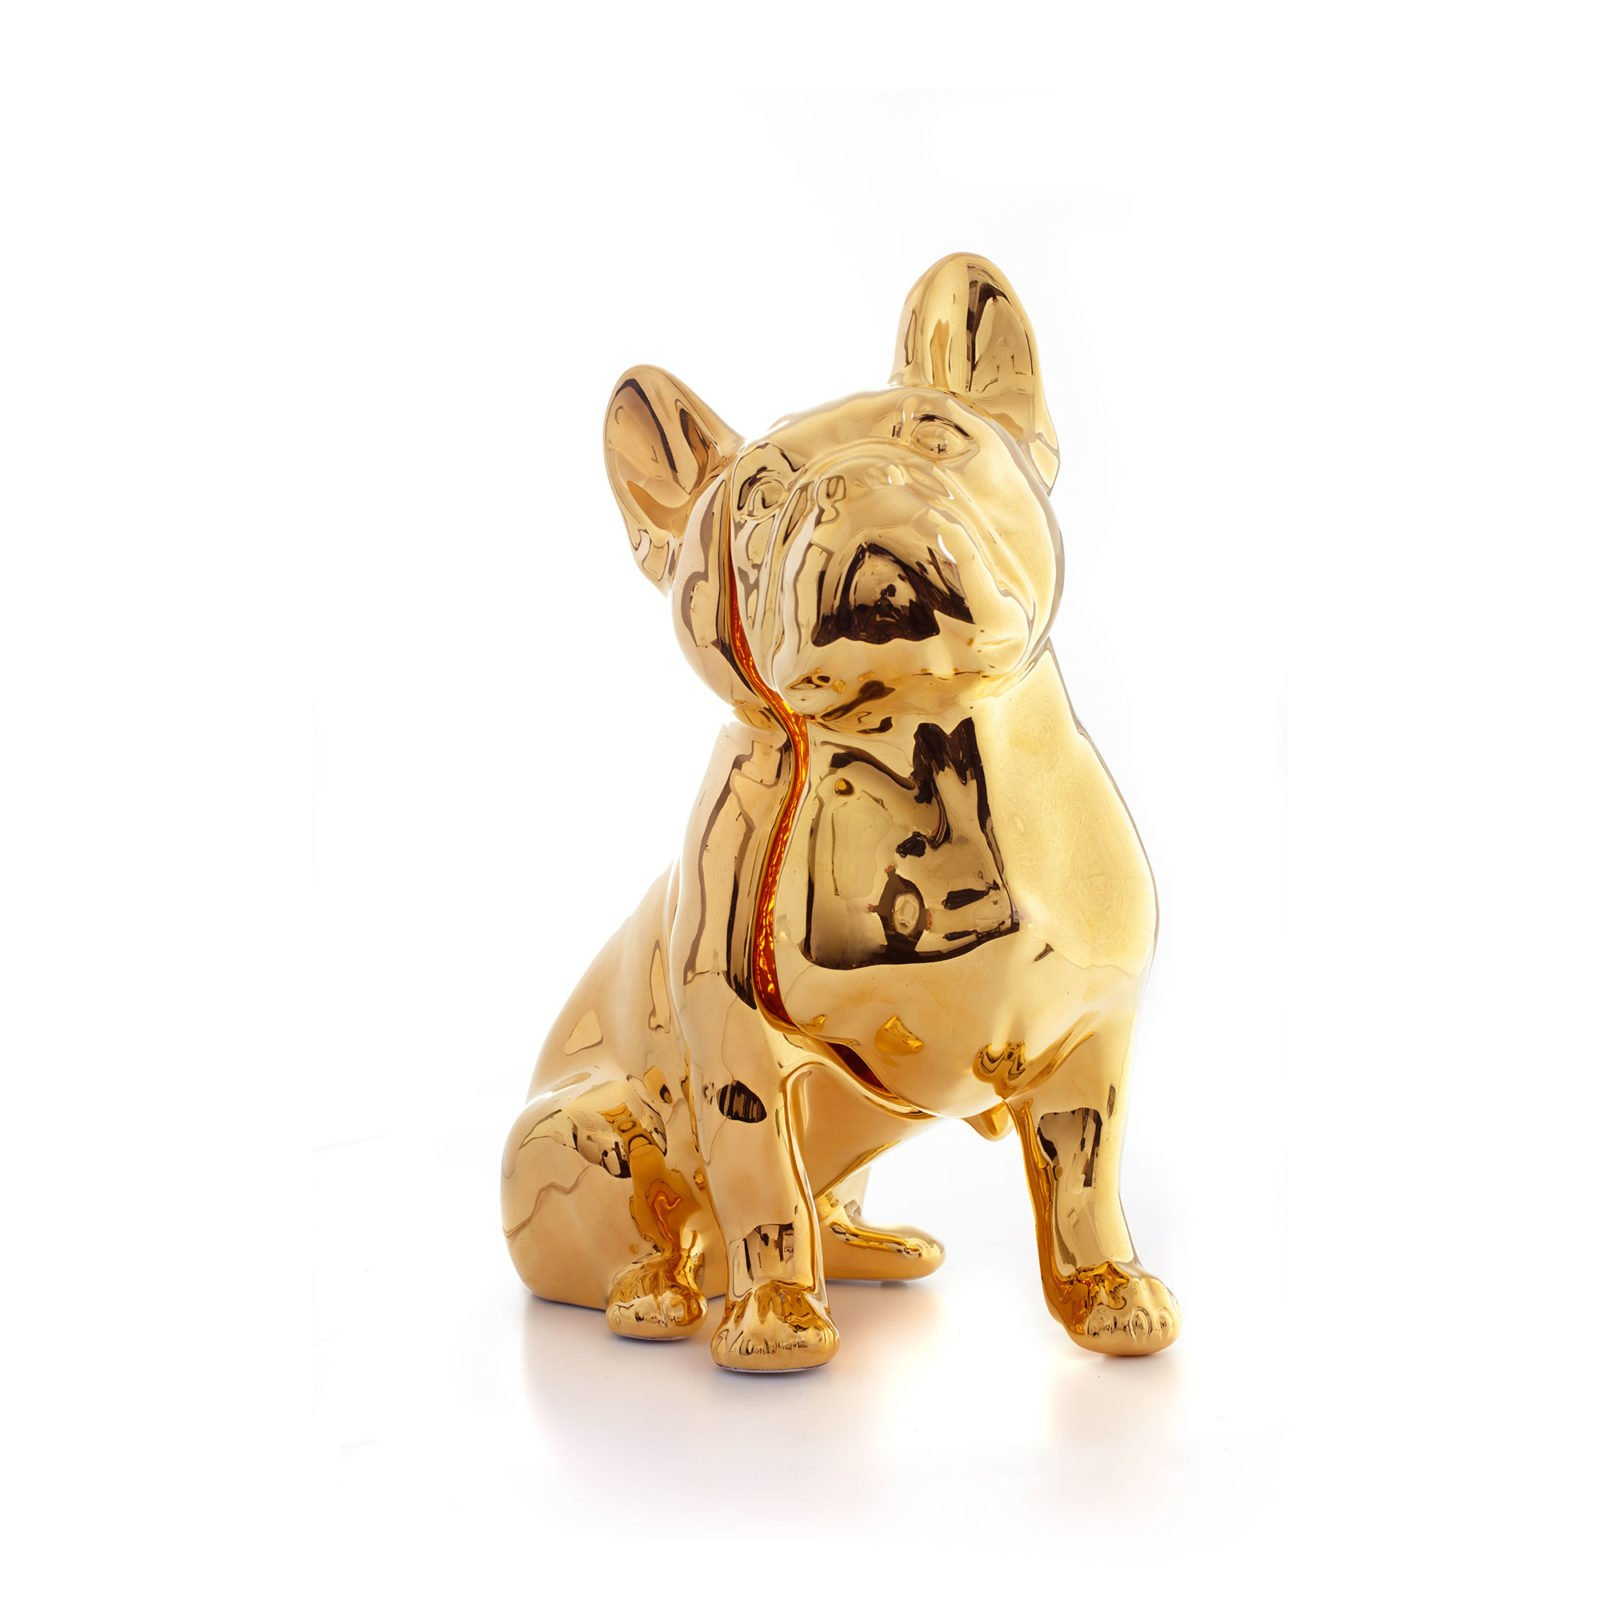 Toto Dog Table Lamp, 24Kt Gold Hand Painted-34700